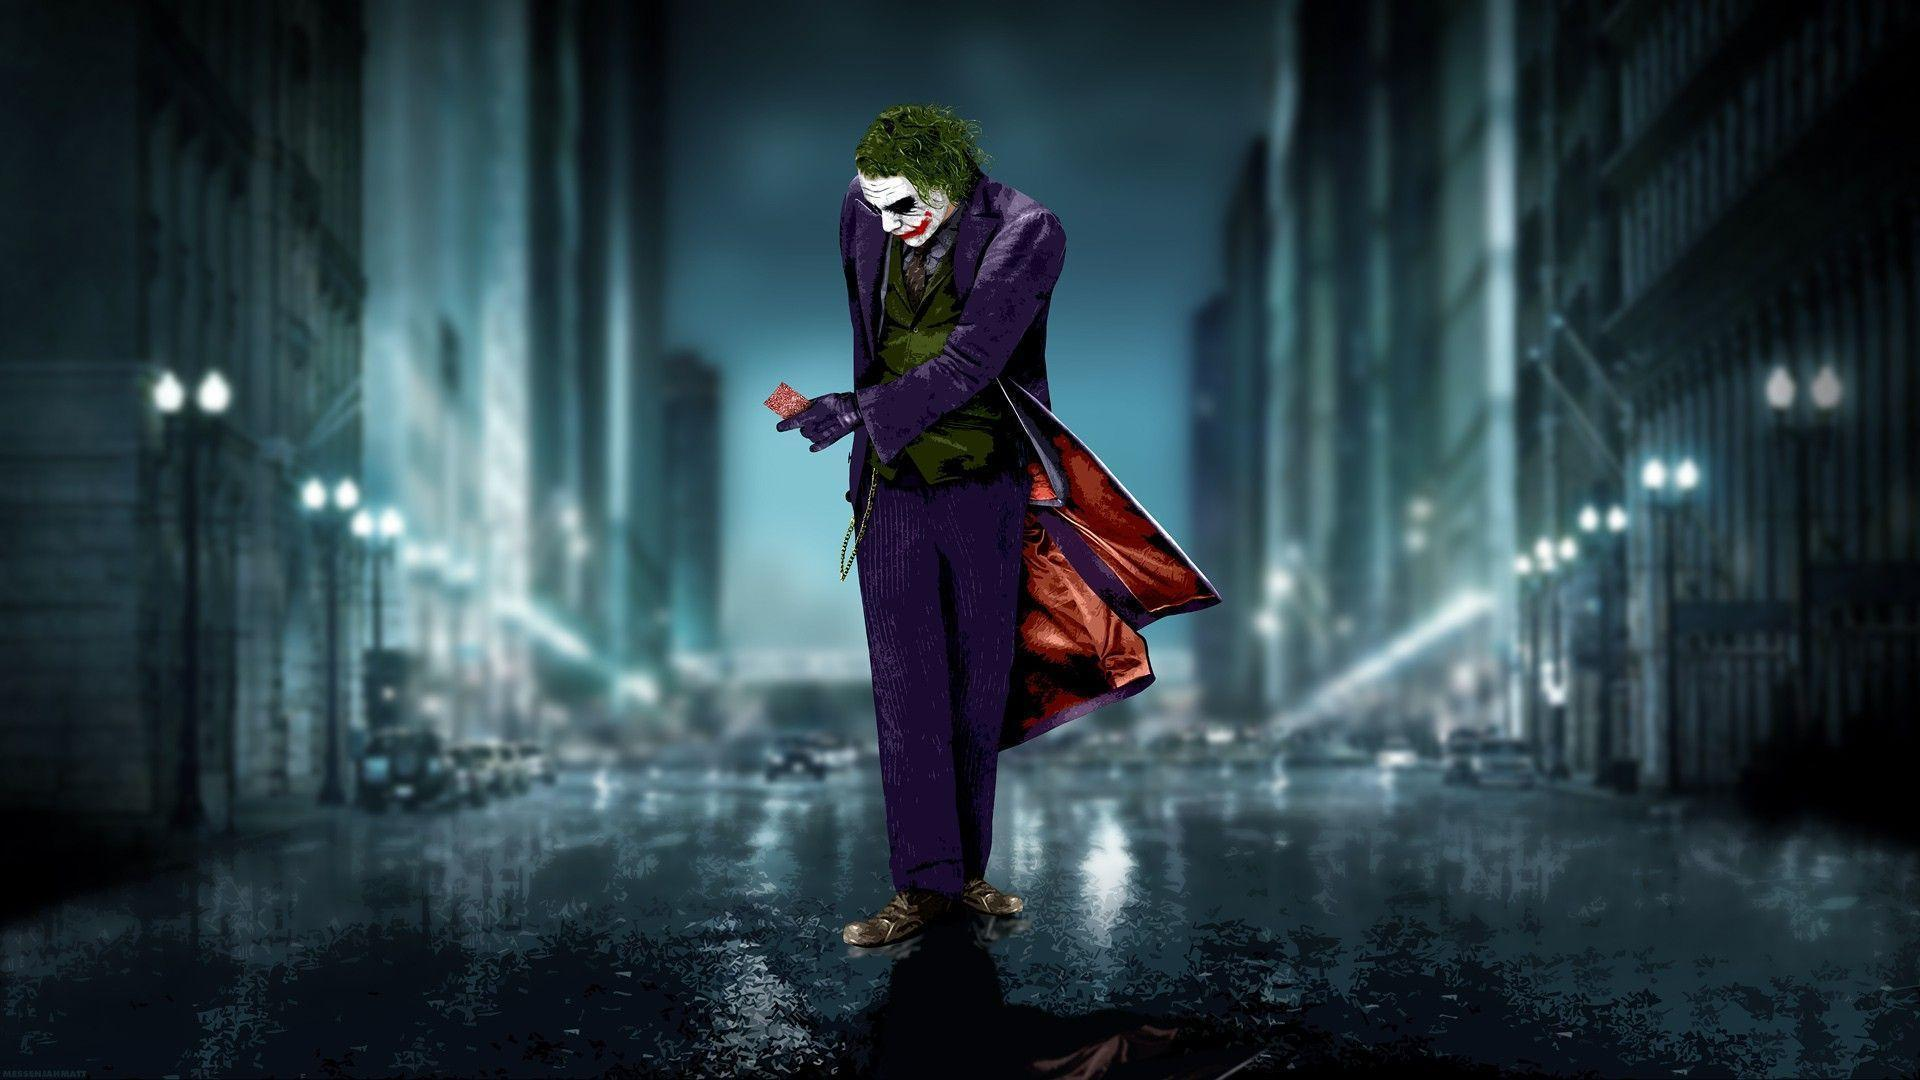 The Joker Desktop Backgrounds  Wallpaper Cave